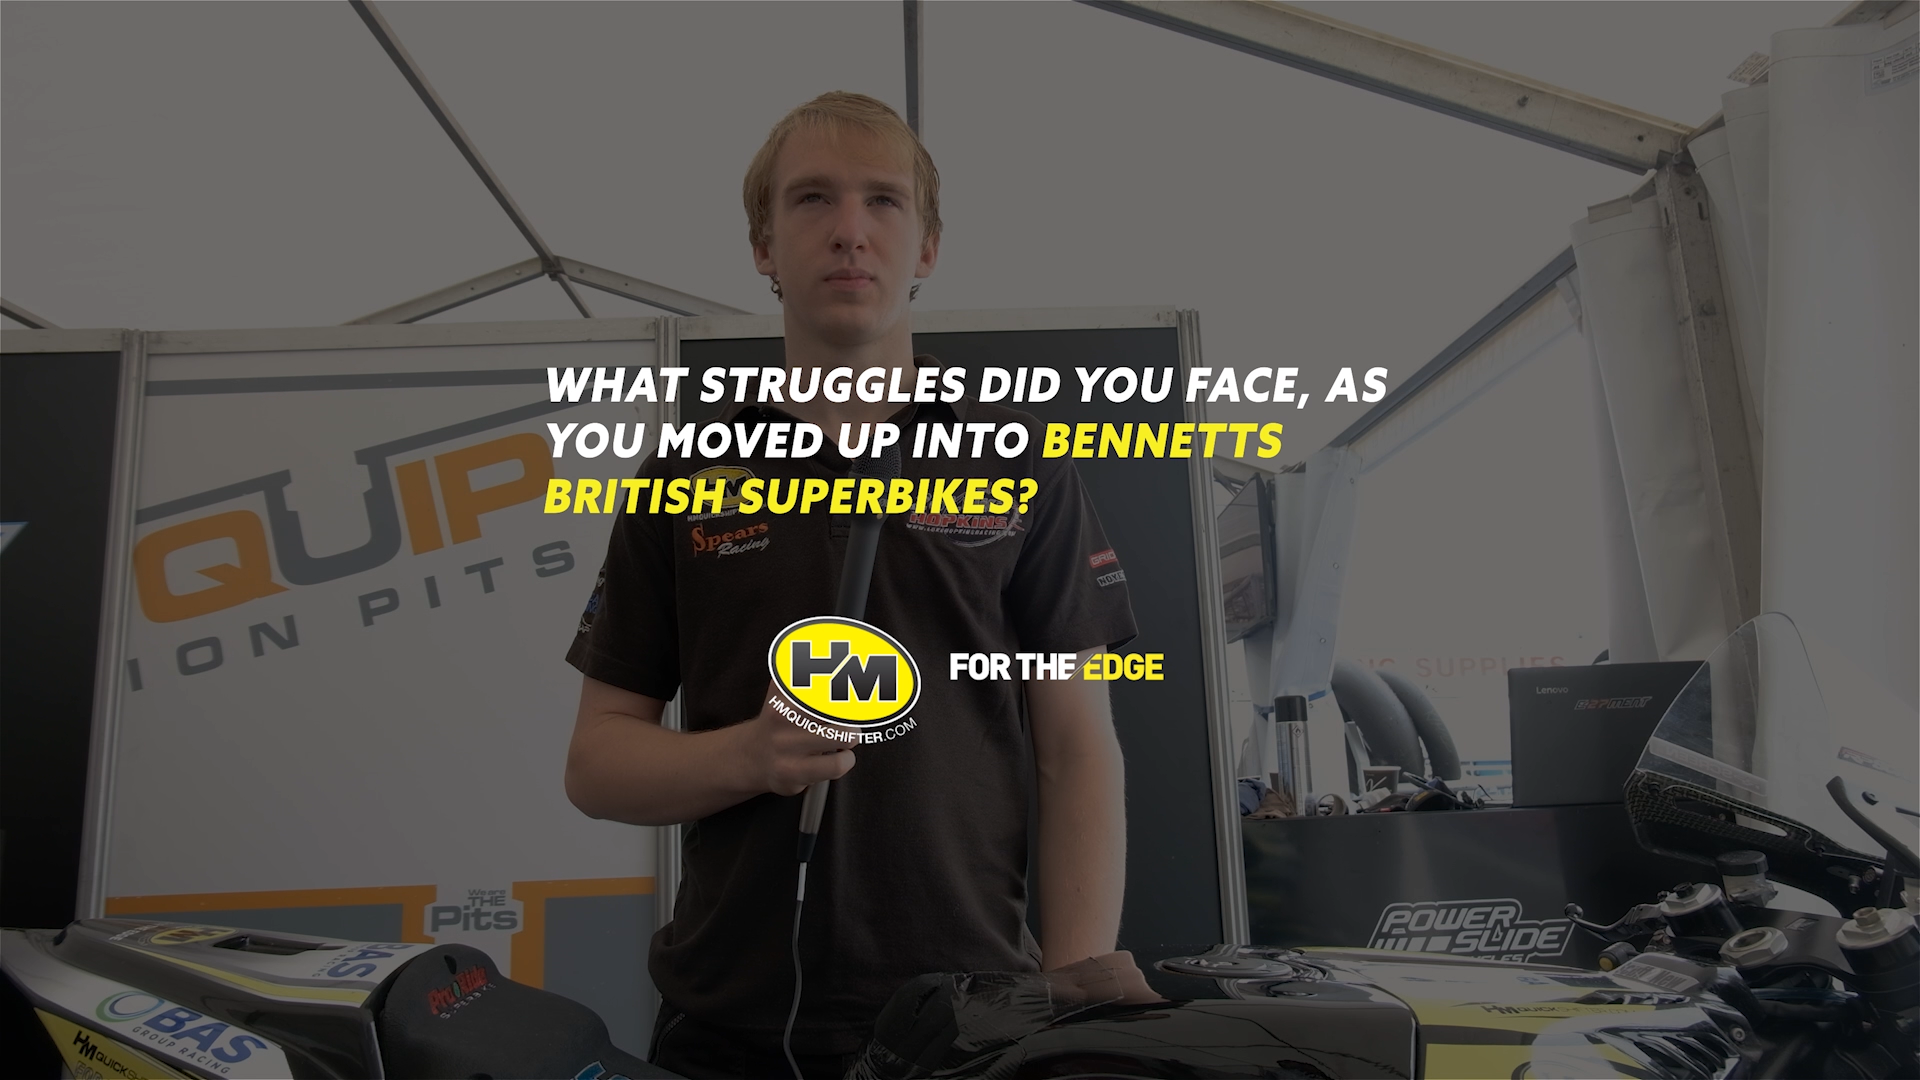 Luke Hopkins - What Challenges Did You Face?